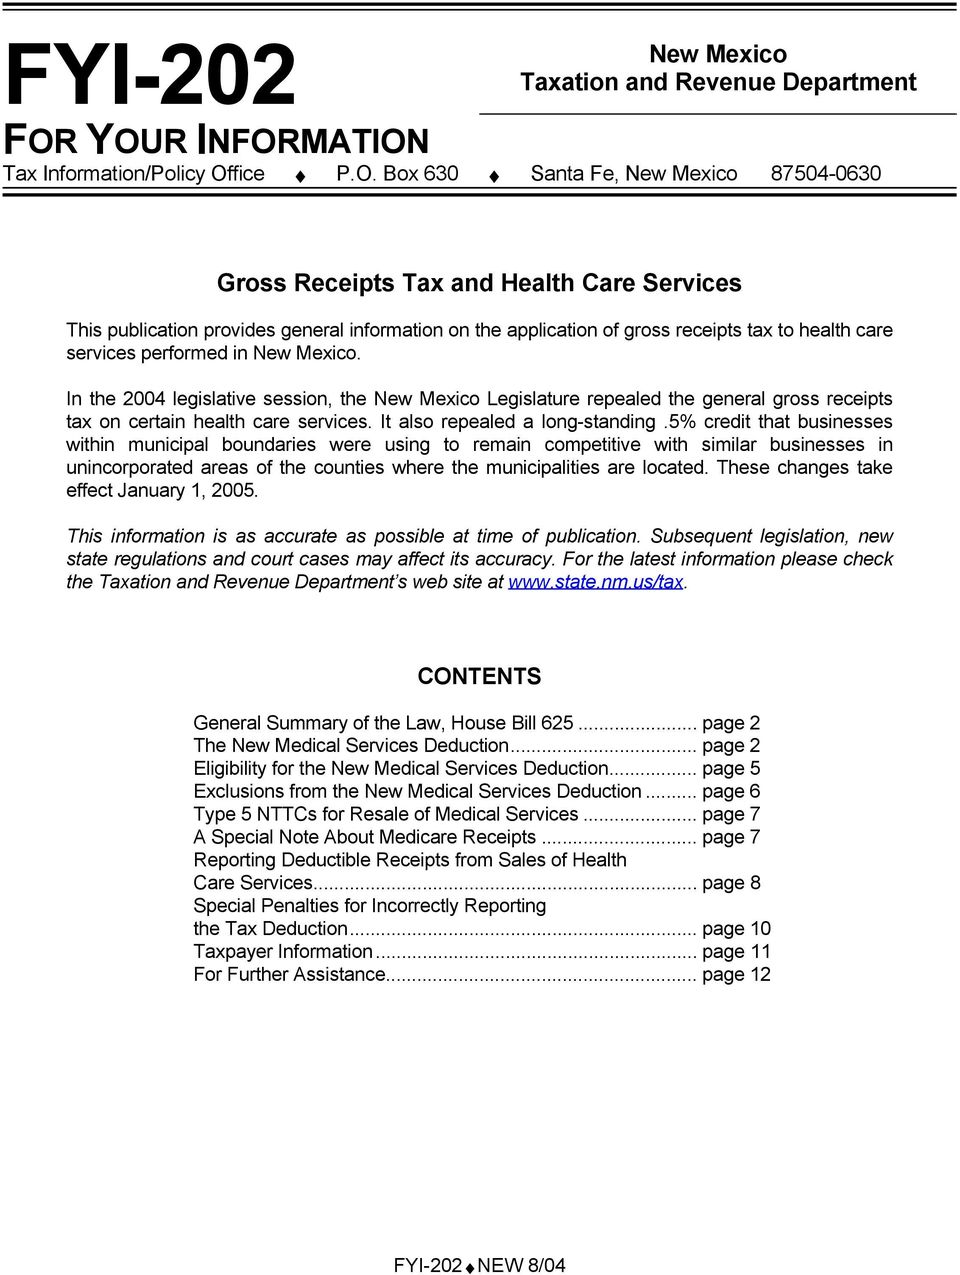 provides general information on the application of gross receipts tax to health care services performed in New Mexico.